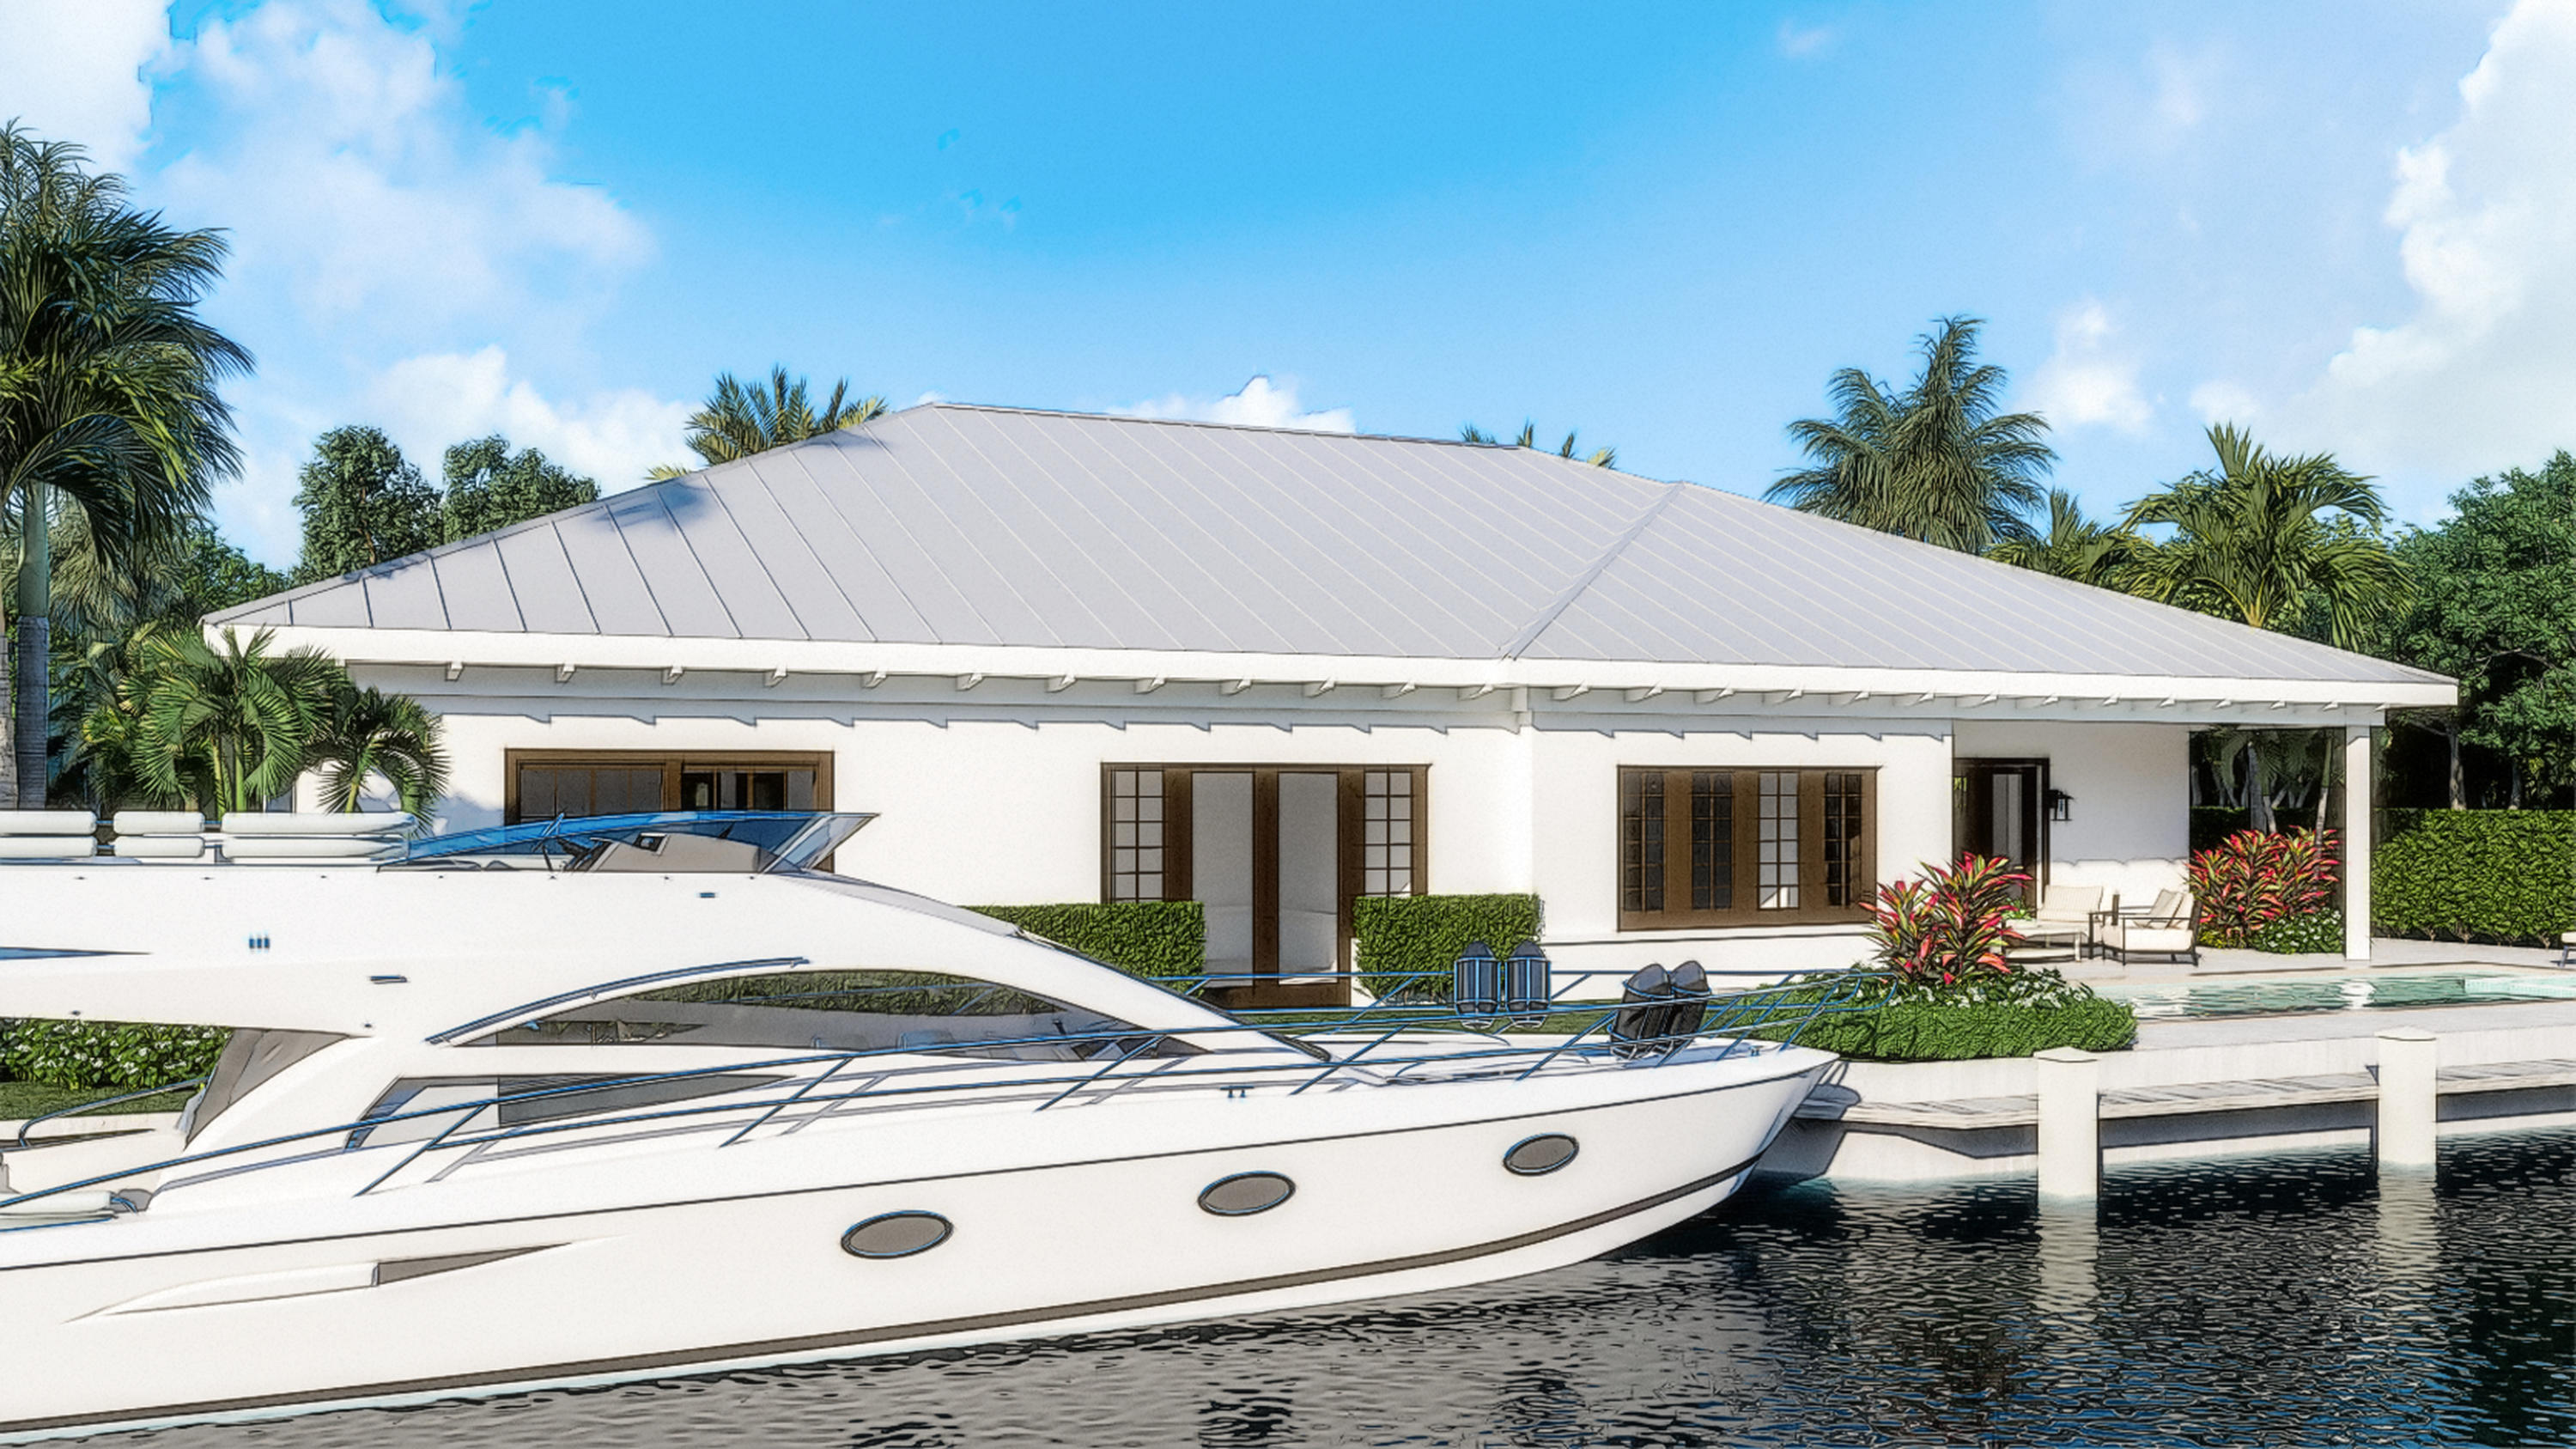 EXPECTED PRICE INCREASE OCTOBER 2021!! DON'T WAIT!! Unbelievable Waterfront Property With No Fixed Bridges, in the Heart of Palm Beach Gardens. Bring Your Boat! This Property is a Stones Throw From the Intracoastal Waterway! Located in Unincorporated Palm Beach County, lower taxes, NO HOA, No Restrictions! Amazing - Waterfront - New Construction - Scheduled Completion Date Feb 2022! Stunning 4BR, 4.1 BA, 2 car garage, CBS home built with the most luxurious finishes. Over 100' of water frontage on a deep water canal, just four lots from the intracoastal waterway! Incredible improvements have been made to the site in order to get it ready for a fantastic new construction masterpiece. NEW SEAWALL COMPLETE! Bring your boat- easy in and out access to the intracoastal. Builder eliminating existing septic system with bringing in new county sewer system. Abundant living space including great room, family room, formal dining room and extended covered outdoor living space perfect for entertaining! Complete with a heated pool/spa to cool off after a day on your boat. The home is being built with the best quality materials and workmanship. High impact hurricane windows and doors throughout the home allow for abundant natural daylight and picturesque views of the beautiful pool/spa, the water and your boat. The house is perfect for entertaining with a wonderful flow from the indoors to the outdoors.  The master suite includes oversized his & her closets, a spacious bathroom with a dual shower, soaking tub, and separate toilet room all finished in the highest quality marble and quartz. Enjoy relaxing in your heated spa with private access to the pool deck through your master suite. This Key West Inspired Semi-Custom Pool Home is Located Along One of the Most Desirable Waterfront Communities in Palm Beach Gardens. A True Boaters Paradise- Don't Miss Your Chance to Live Where Others Vacation Please contact Listing Team for Floorplans and renderings